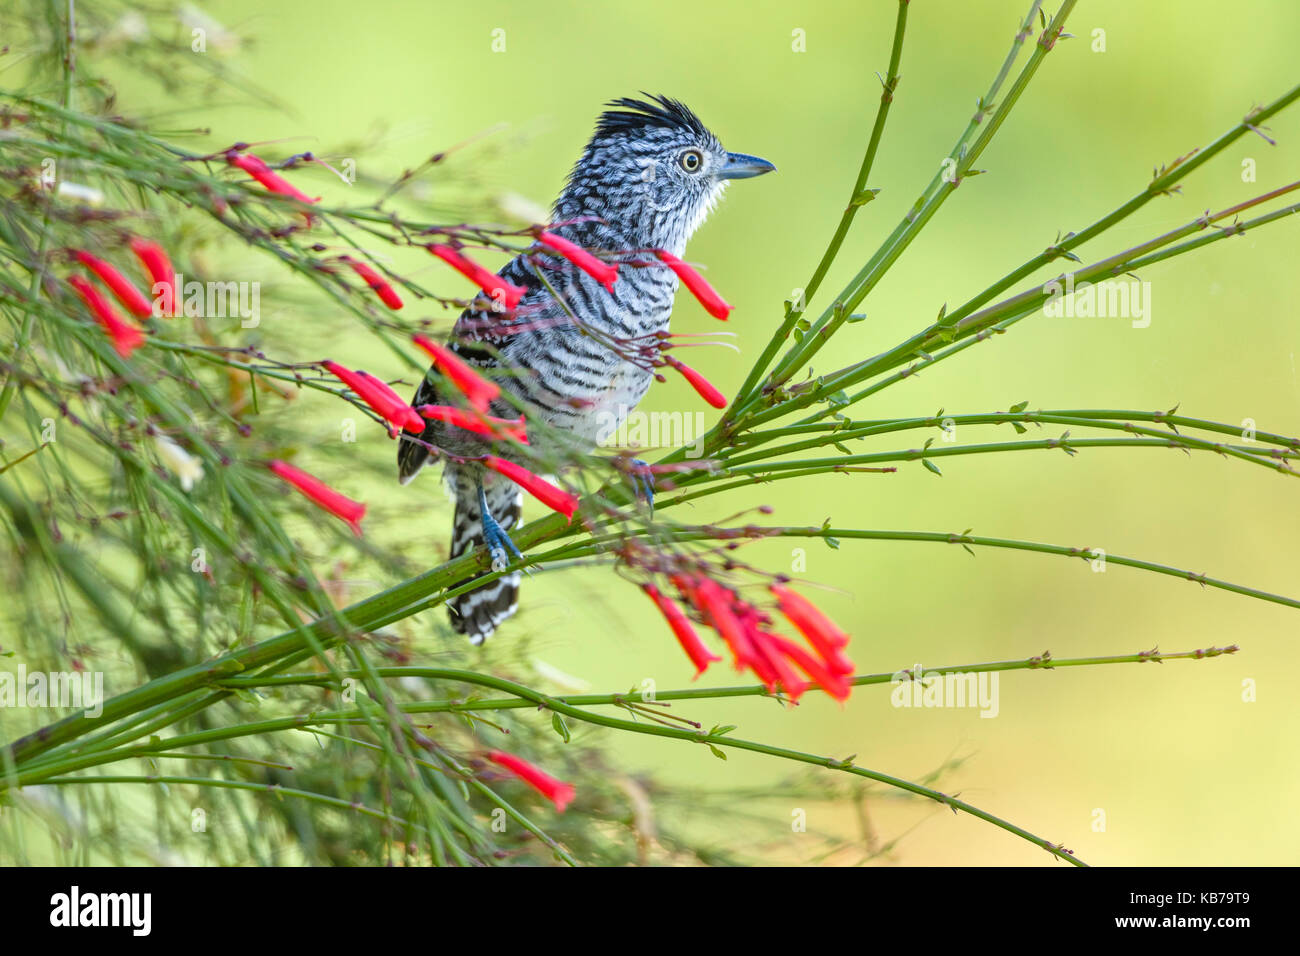 Male of Barred Antshrike (Thamnophilus doliatus) perched on flowering branch, Brazil, Mato Grosso, Chapada dos Guimaraes - Stock Image